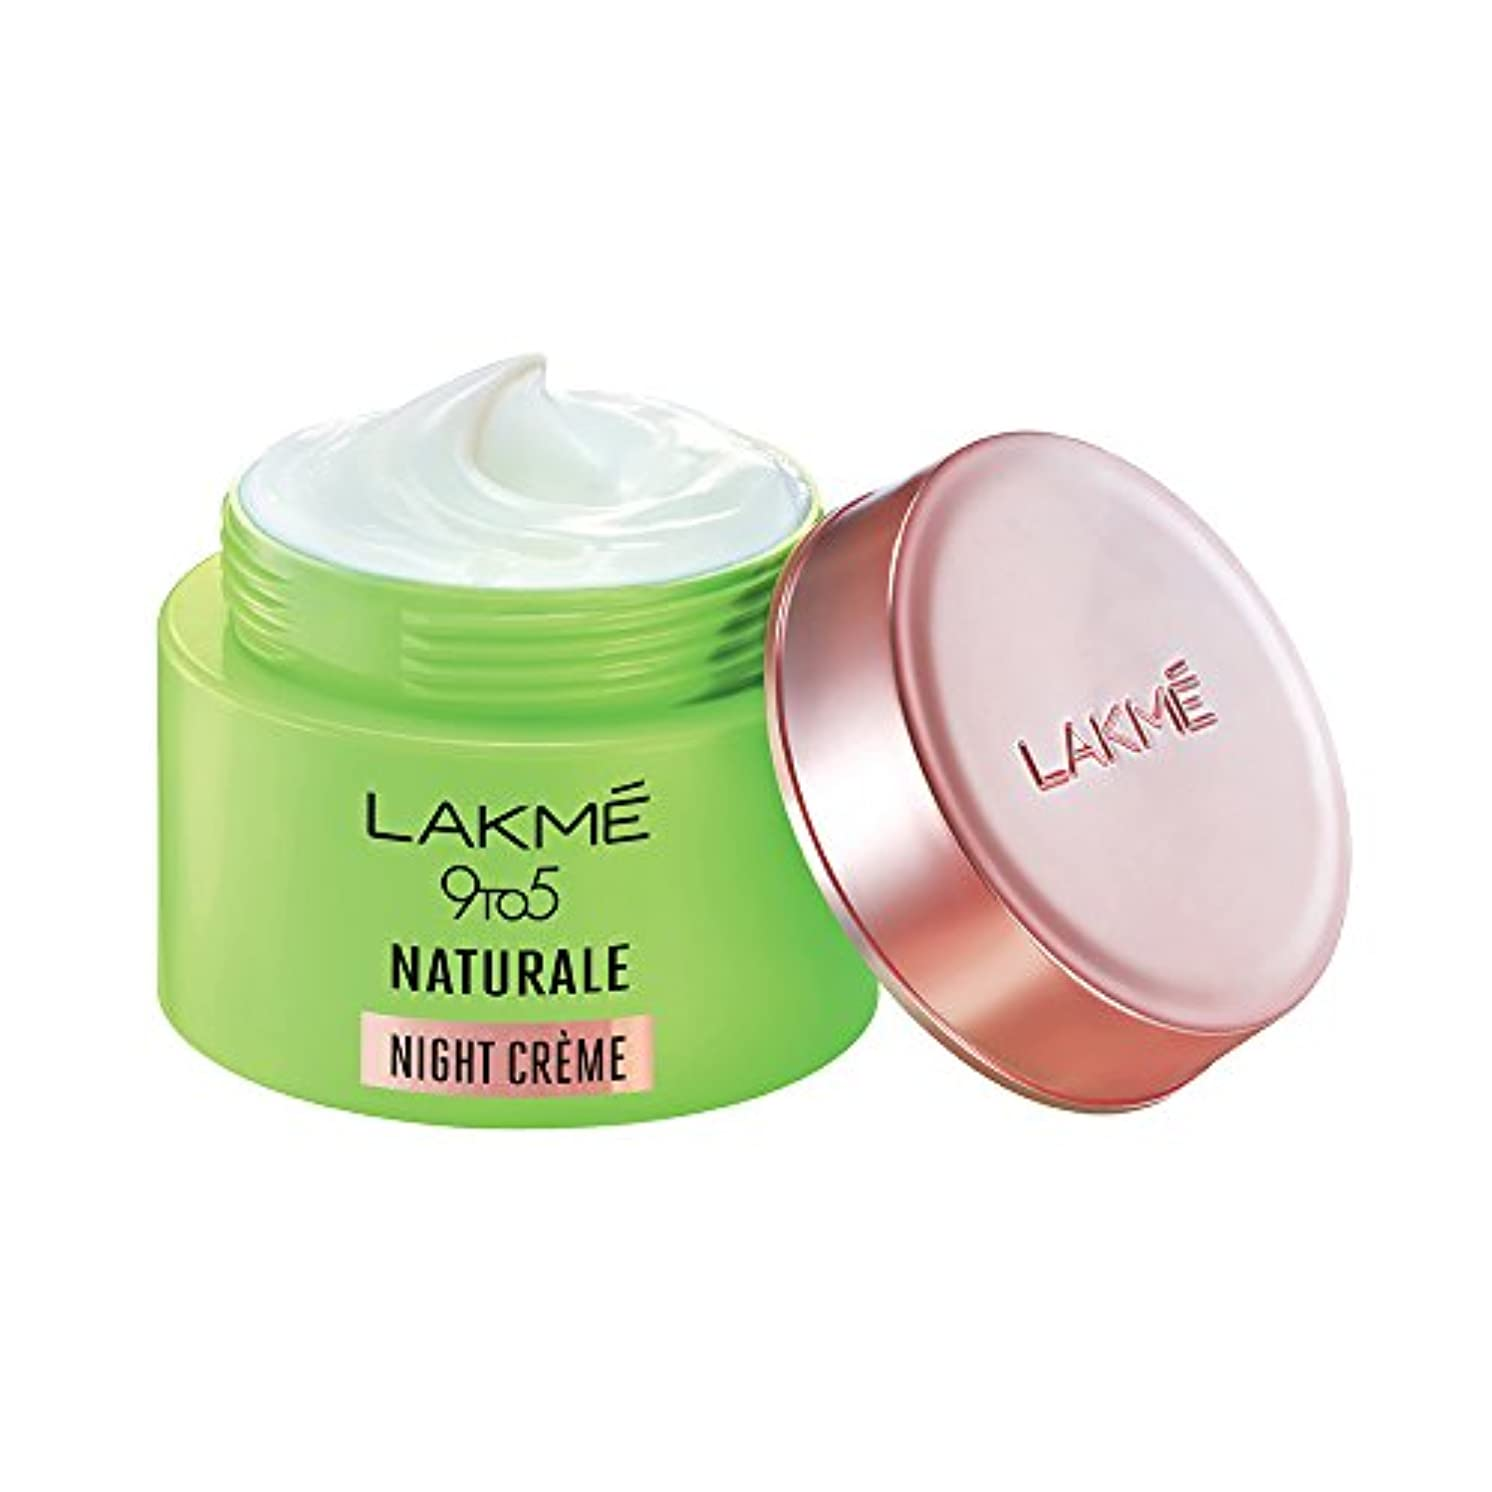 分布硫黄お香Lakme 9 to 5 Naturale Night Creme, 50 g